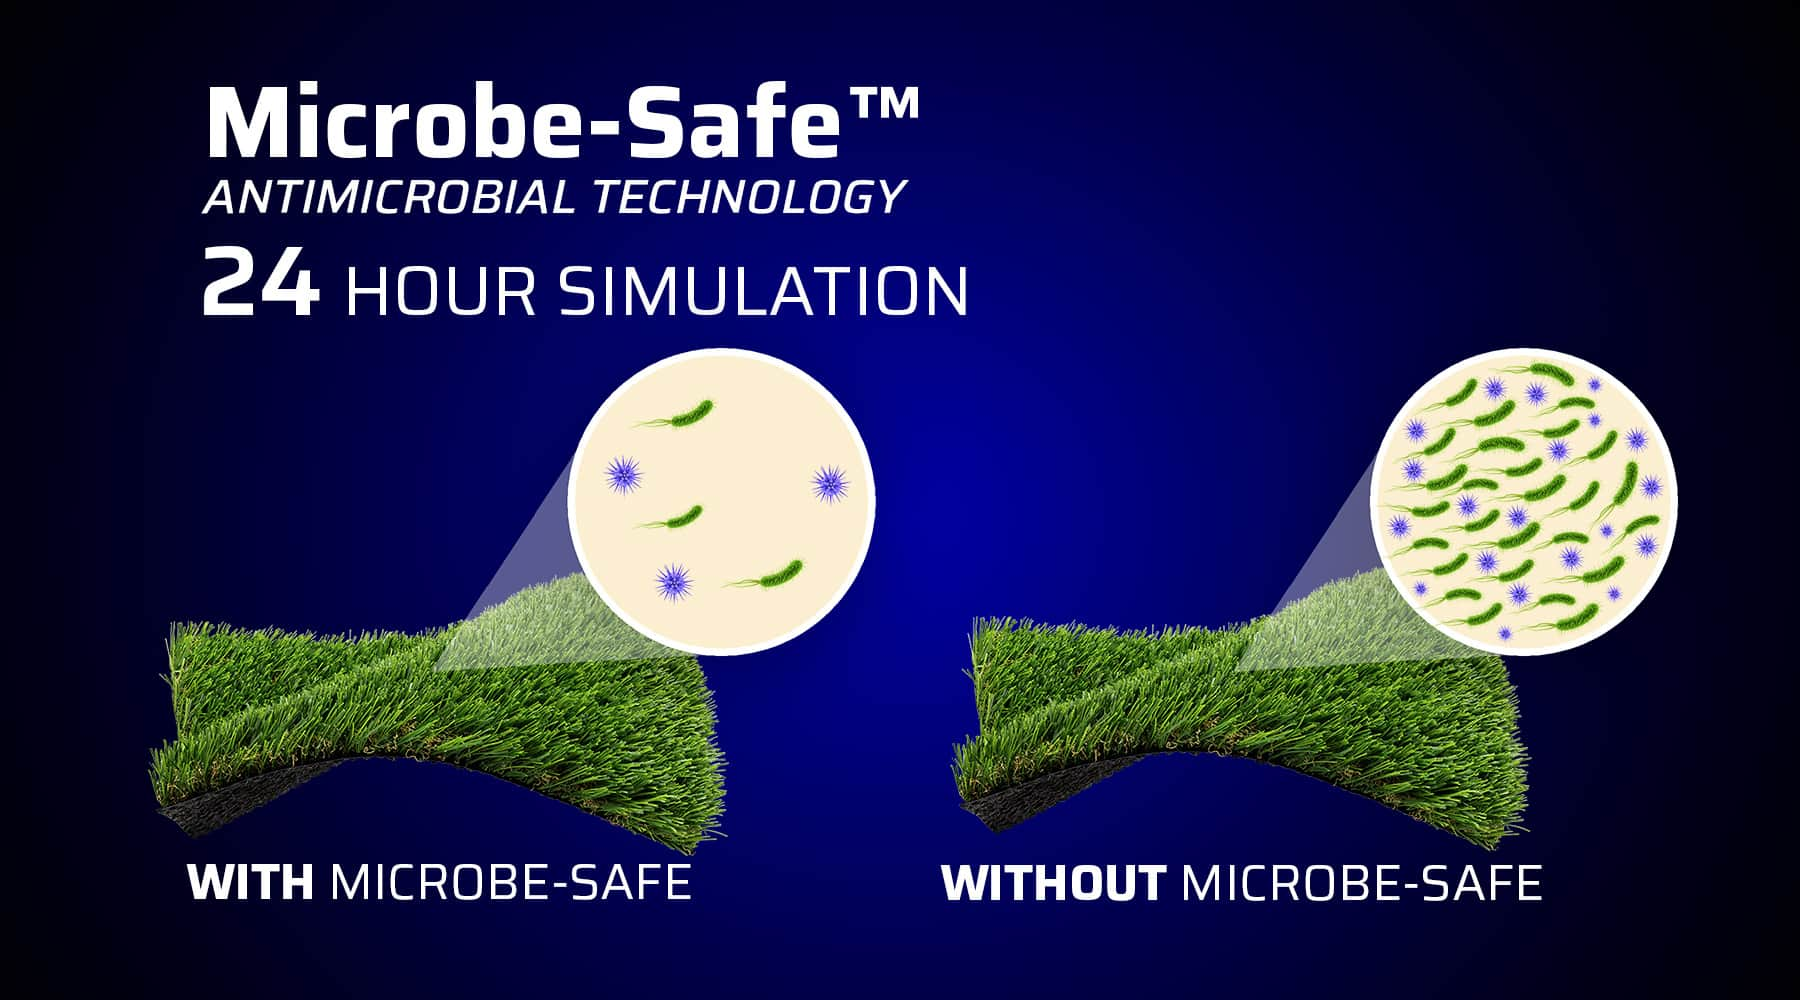 Graphic showing how antimicrobial properties prevent the growth of bacteria on turf